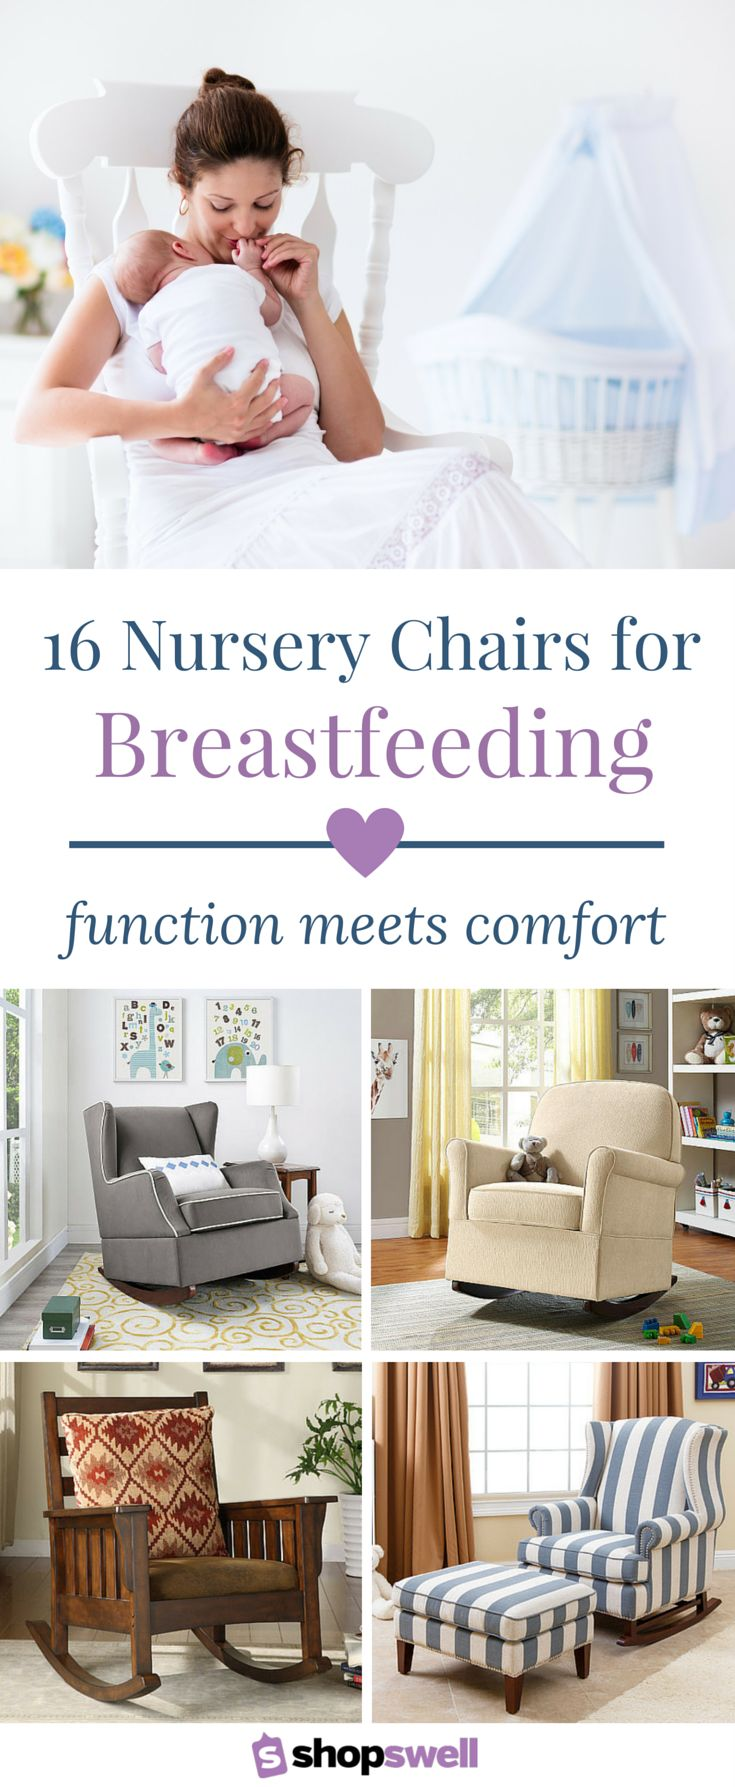 Having the perfect chair while breastfeeding or a comfy spot in the nursery to rock your baby back to sleep is probably the most important item you'll want available when you bring your newborn home. Shop the collection now!